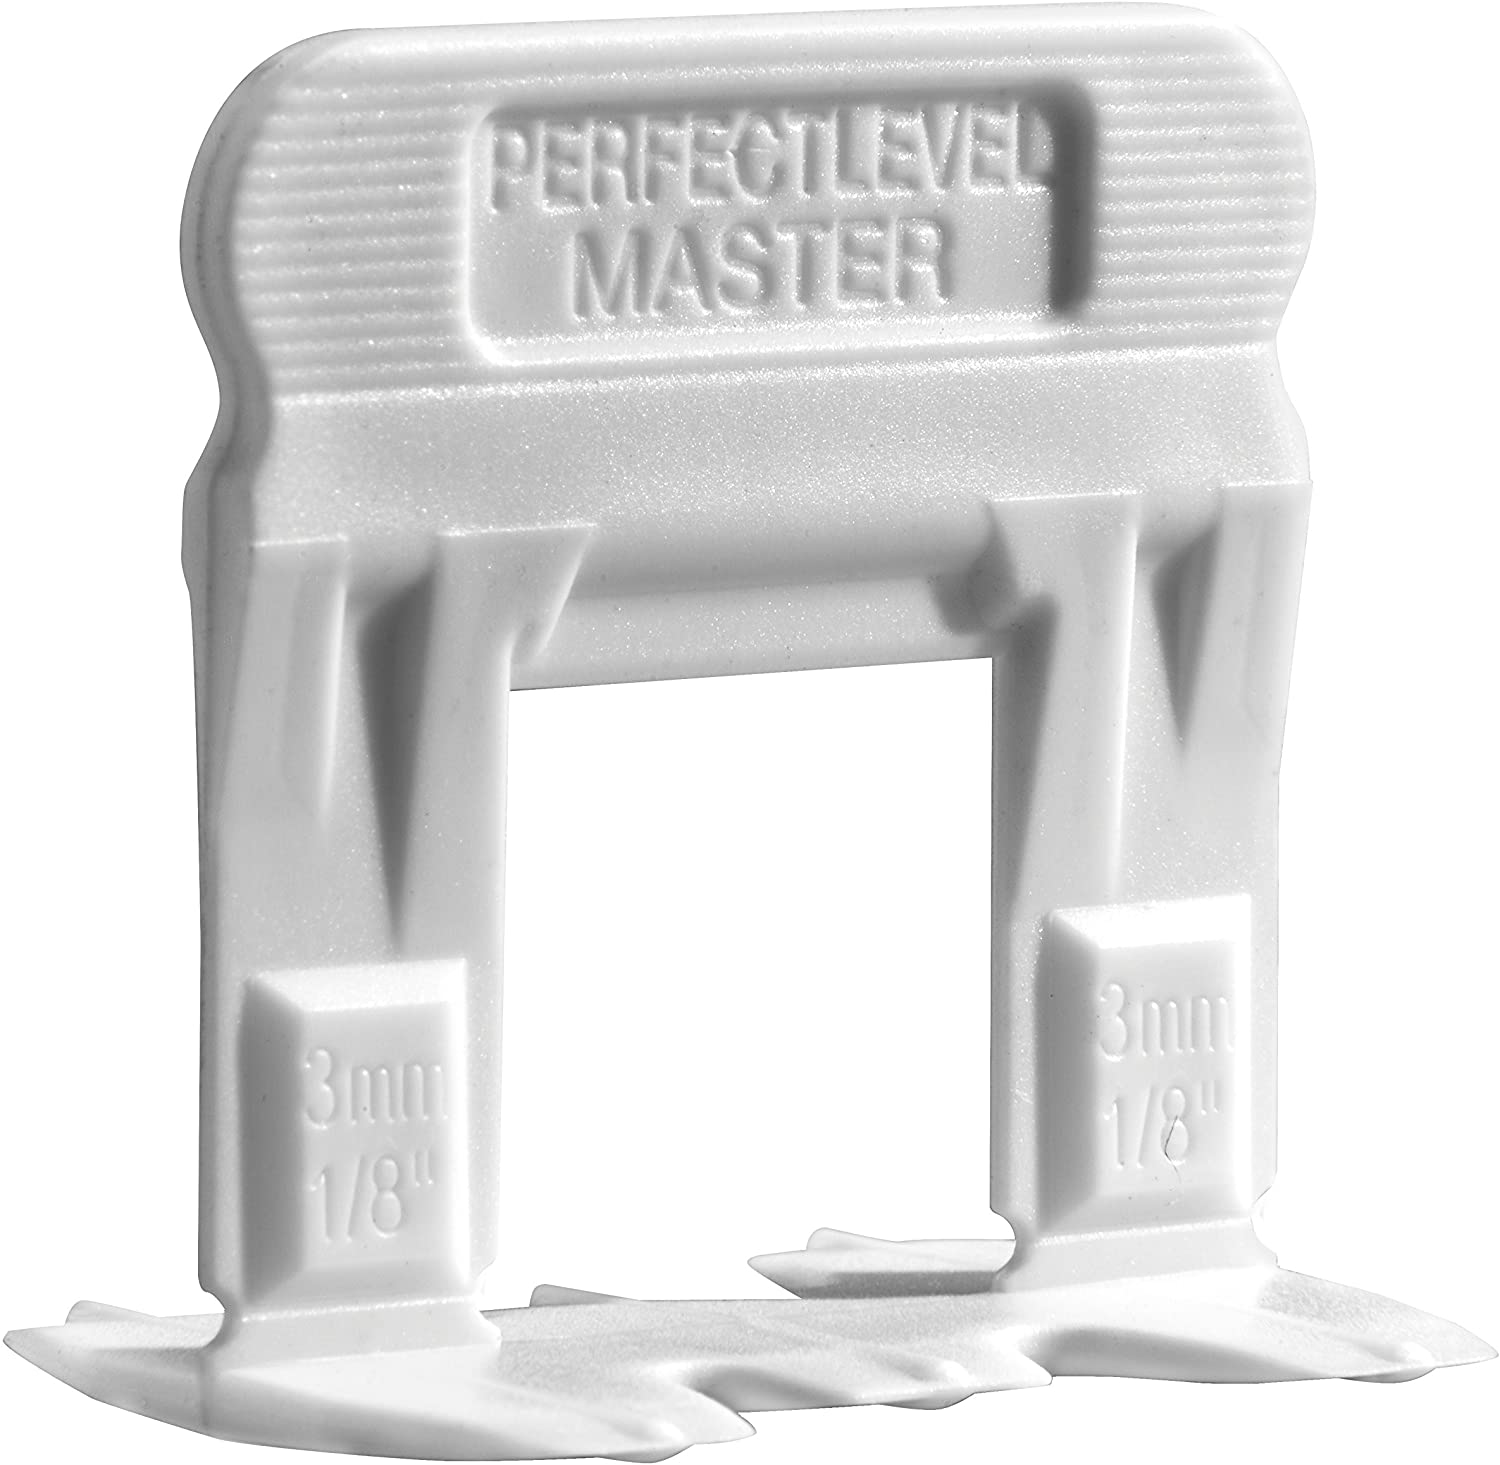 T-Lock PERFECT LEVEL MASTER Professional Anti lippage Tile Leveling System - Spacers Only - Red Wedges Not Included and Sold Separately (1500, 3mm)